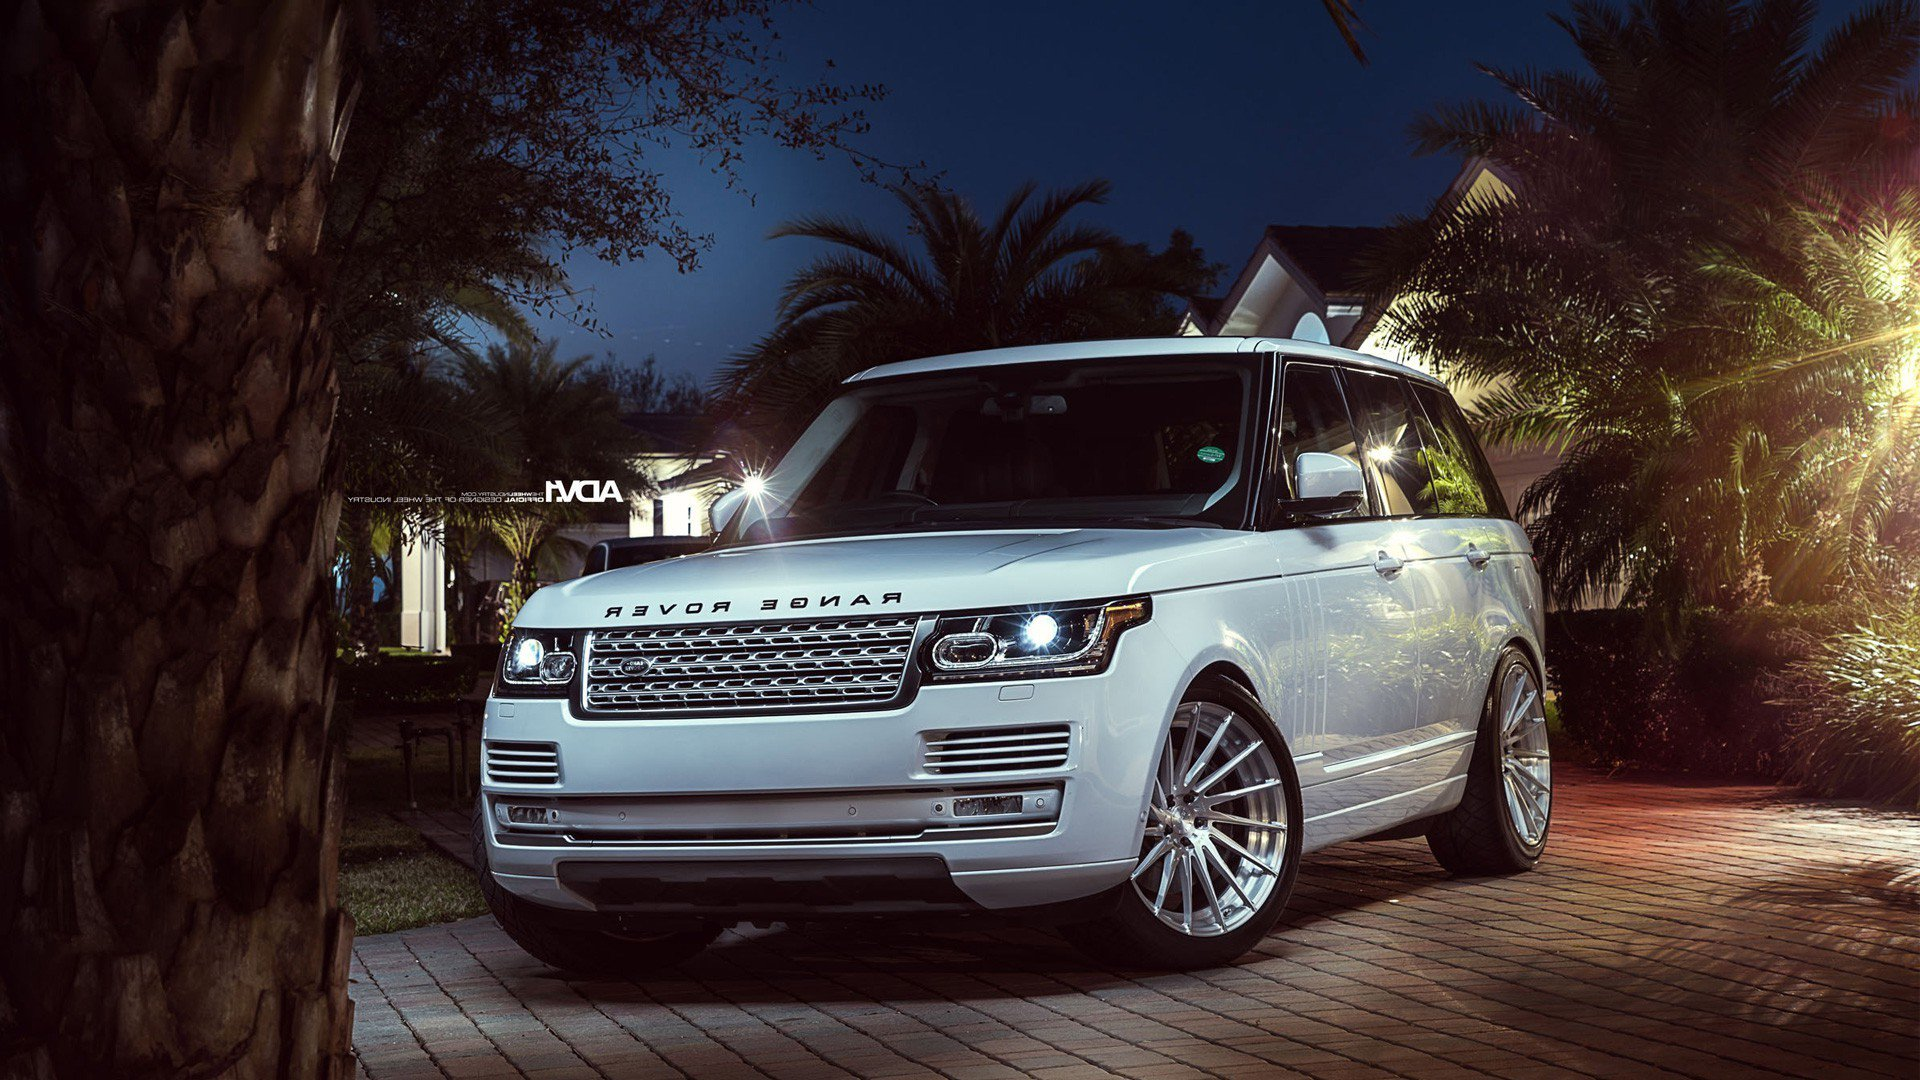 1920x1080 - Range Rover Wallpapers 6